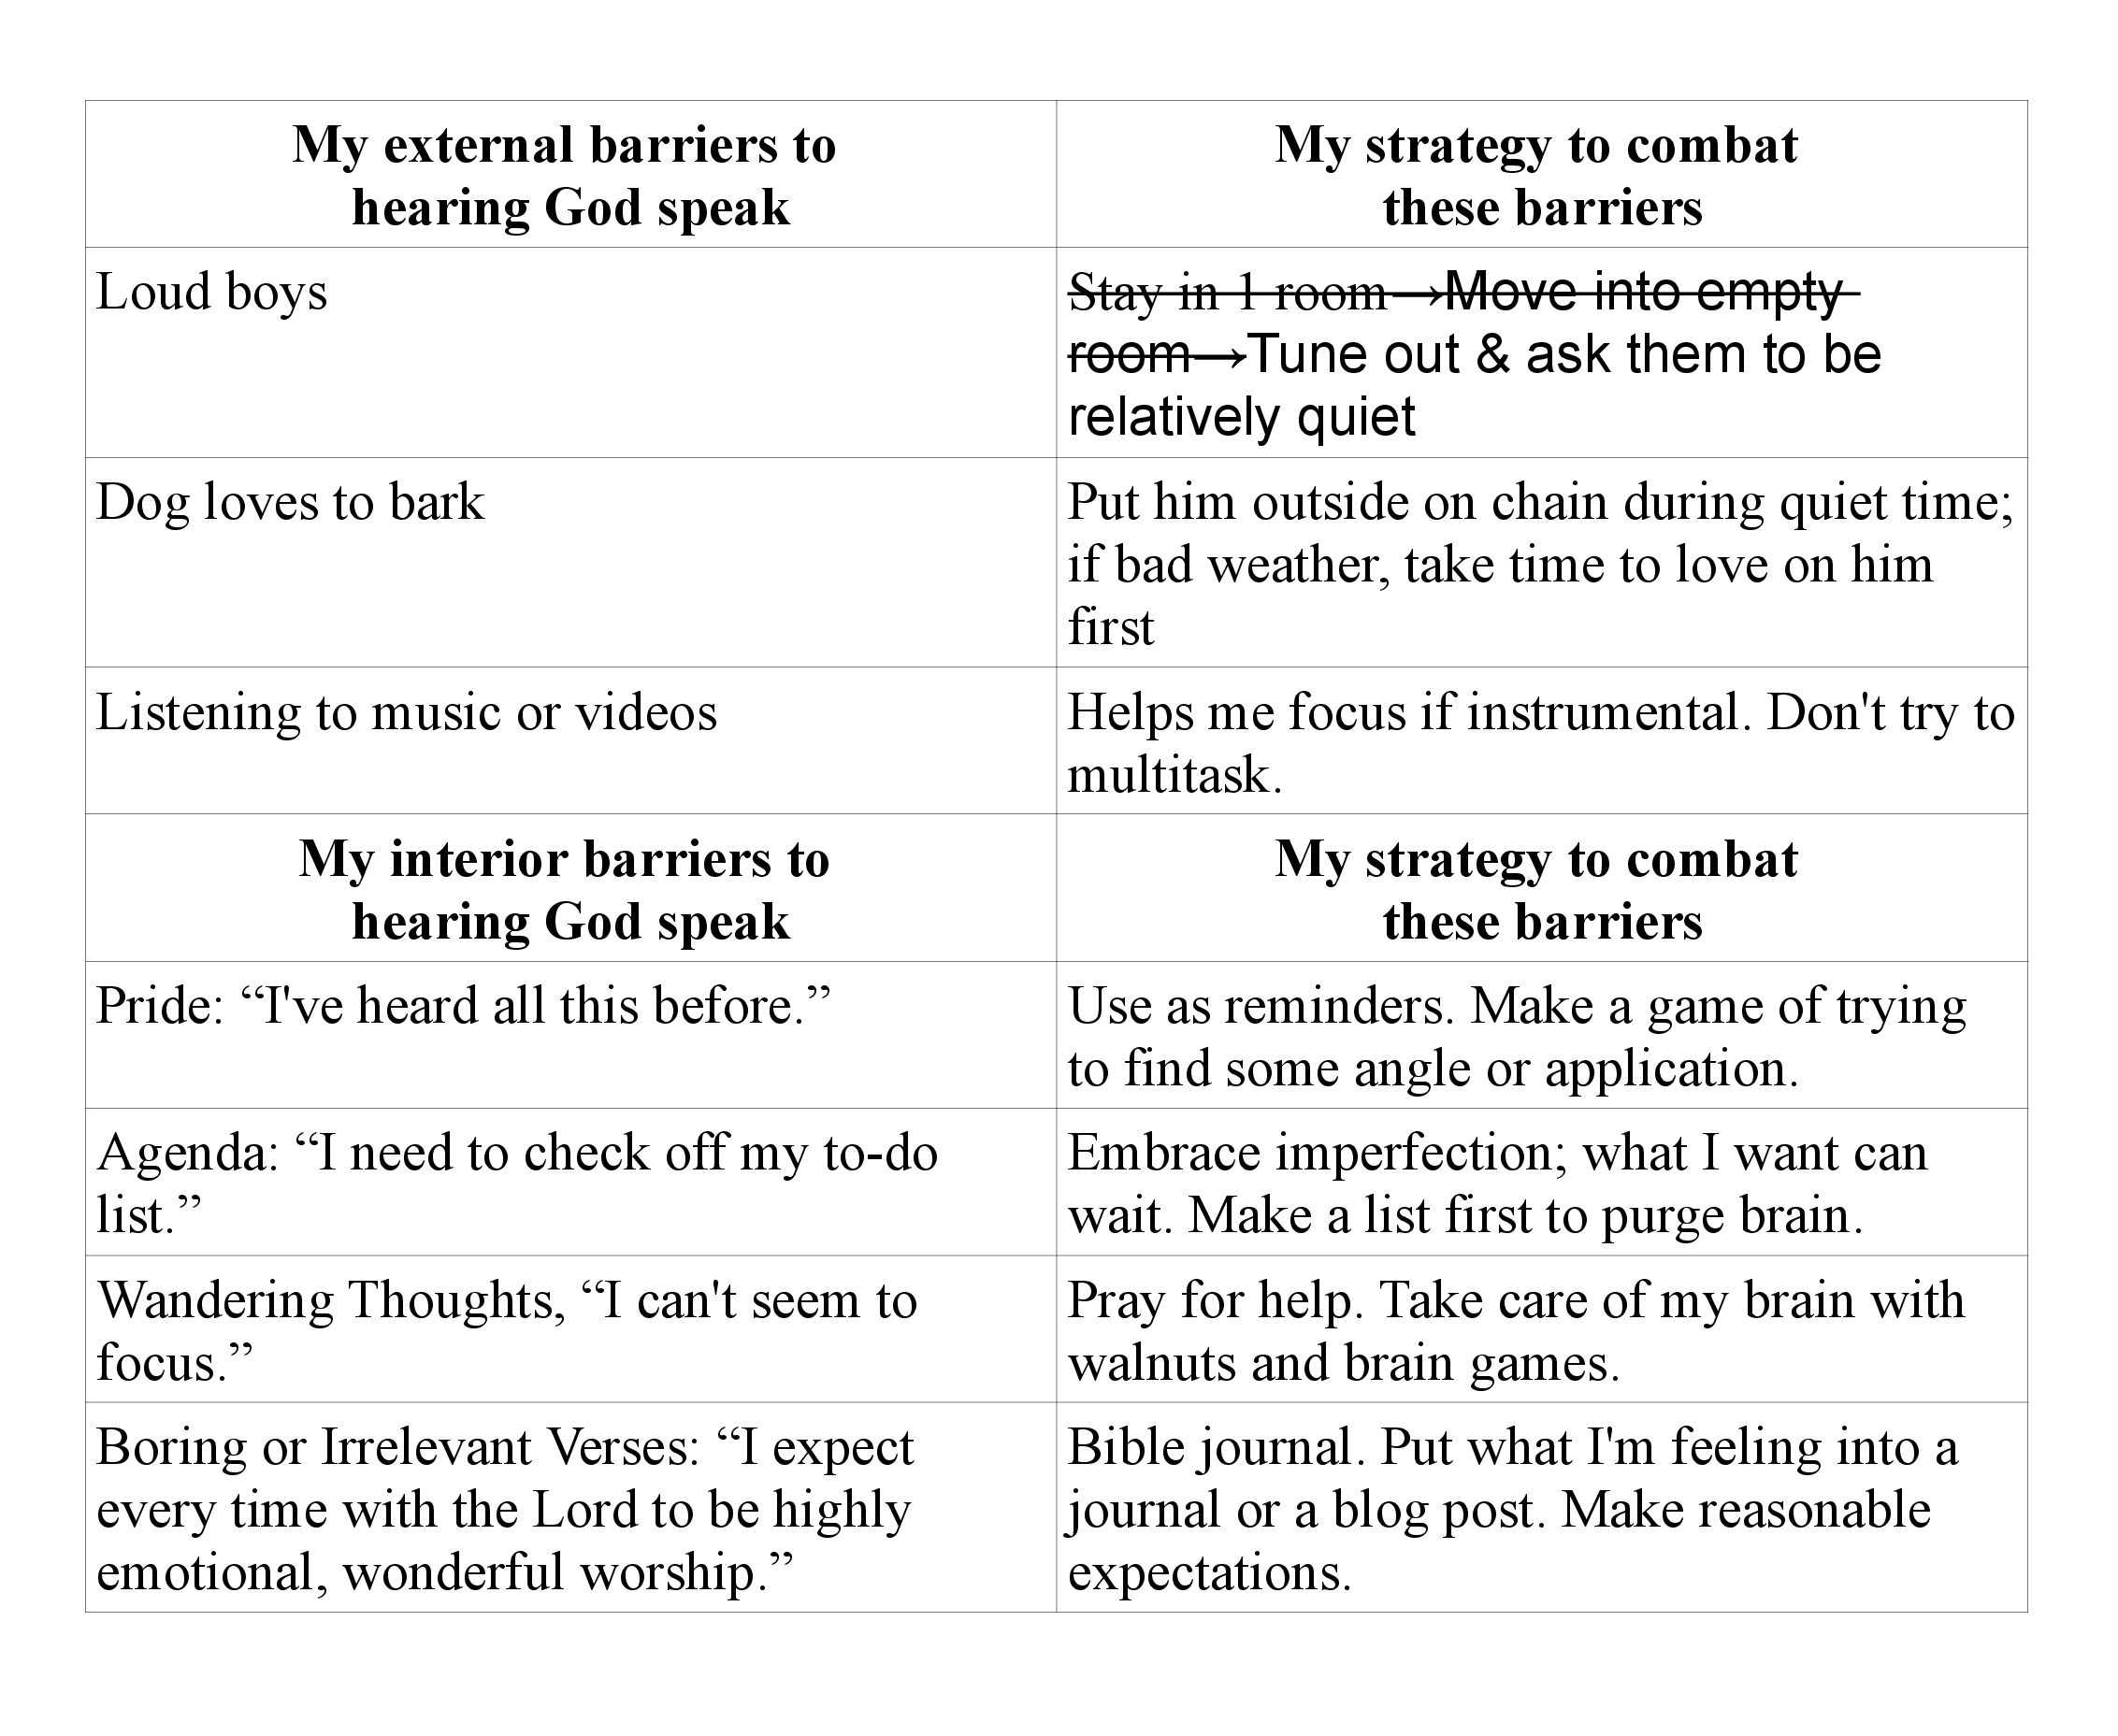 external & internal barriers chart-png cropped.png